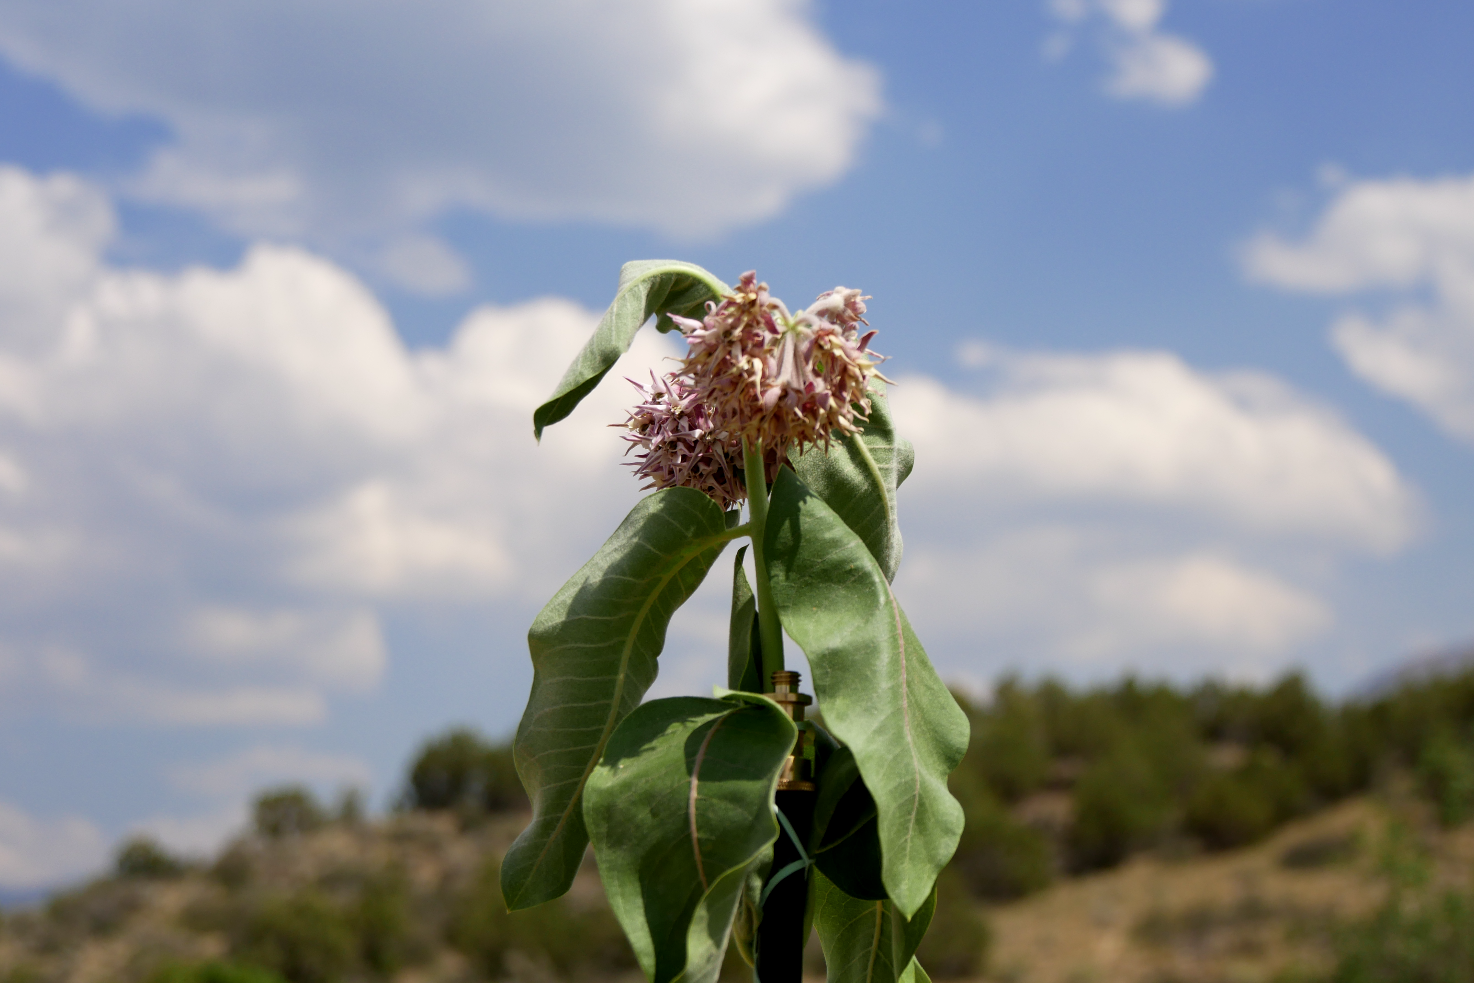 Shot lots of flowers along the ditch trail on Paonia Hill. This is wilting milkweed.